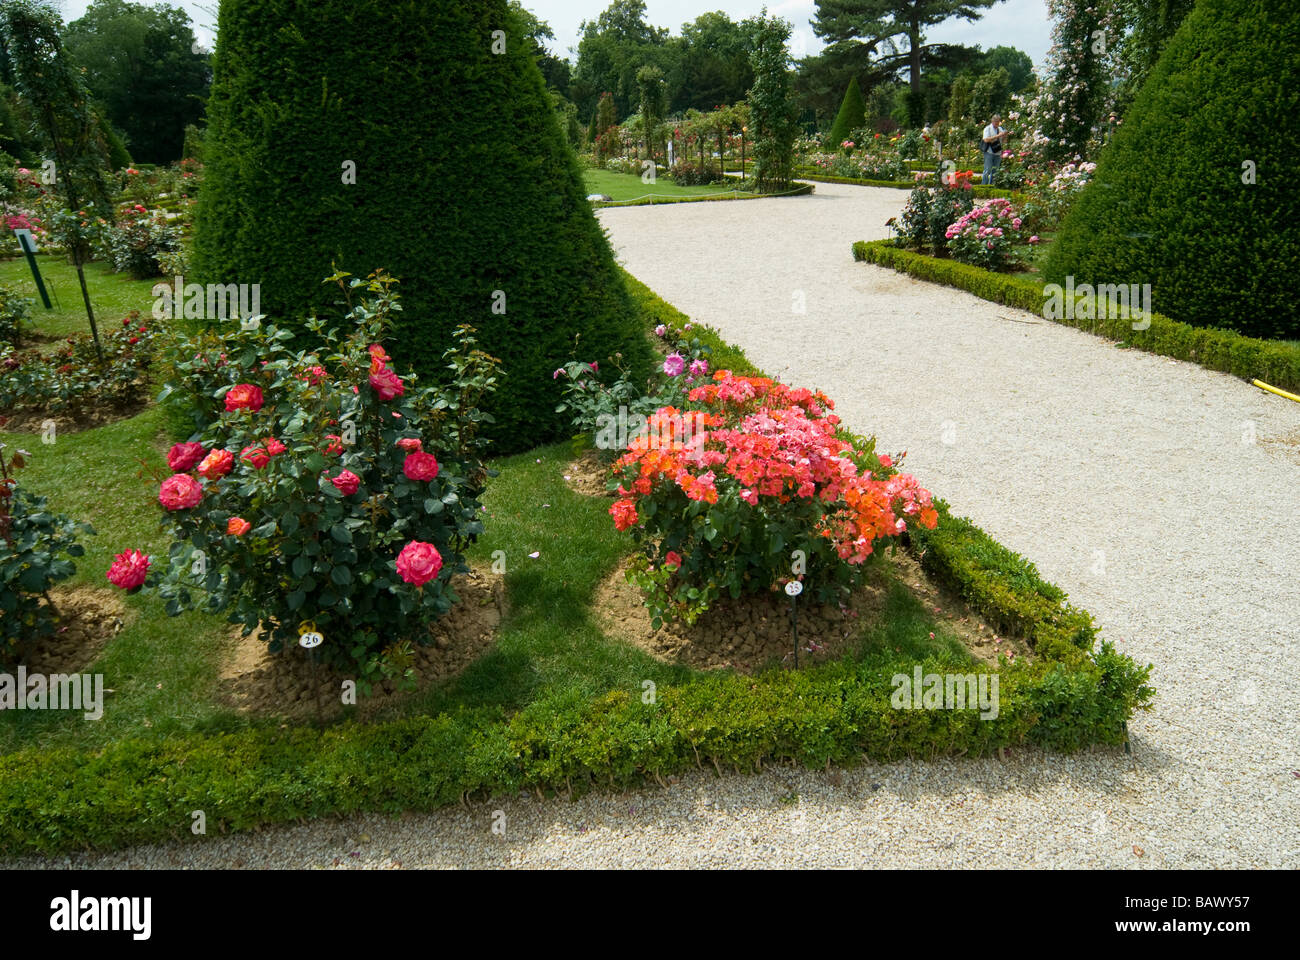 France, Paris, Bois de Boulogne, Parc de Bagatelle, rose garden and orangery Stock Photo